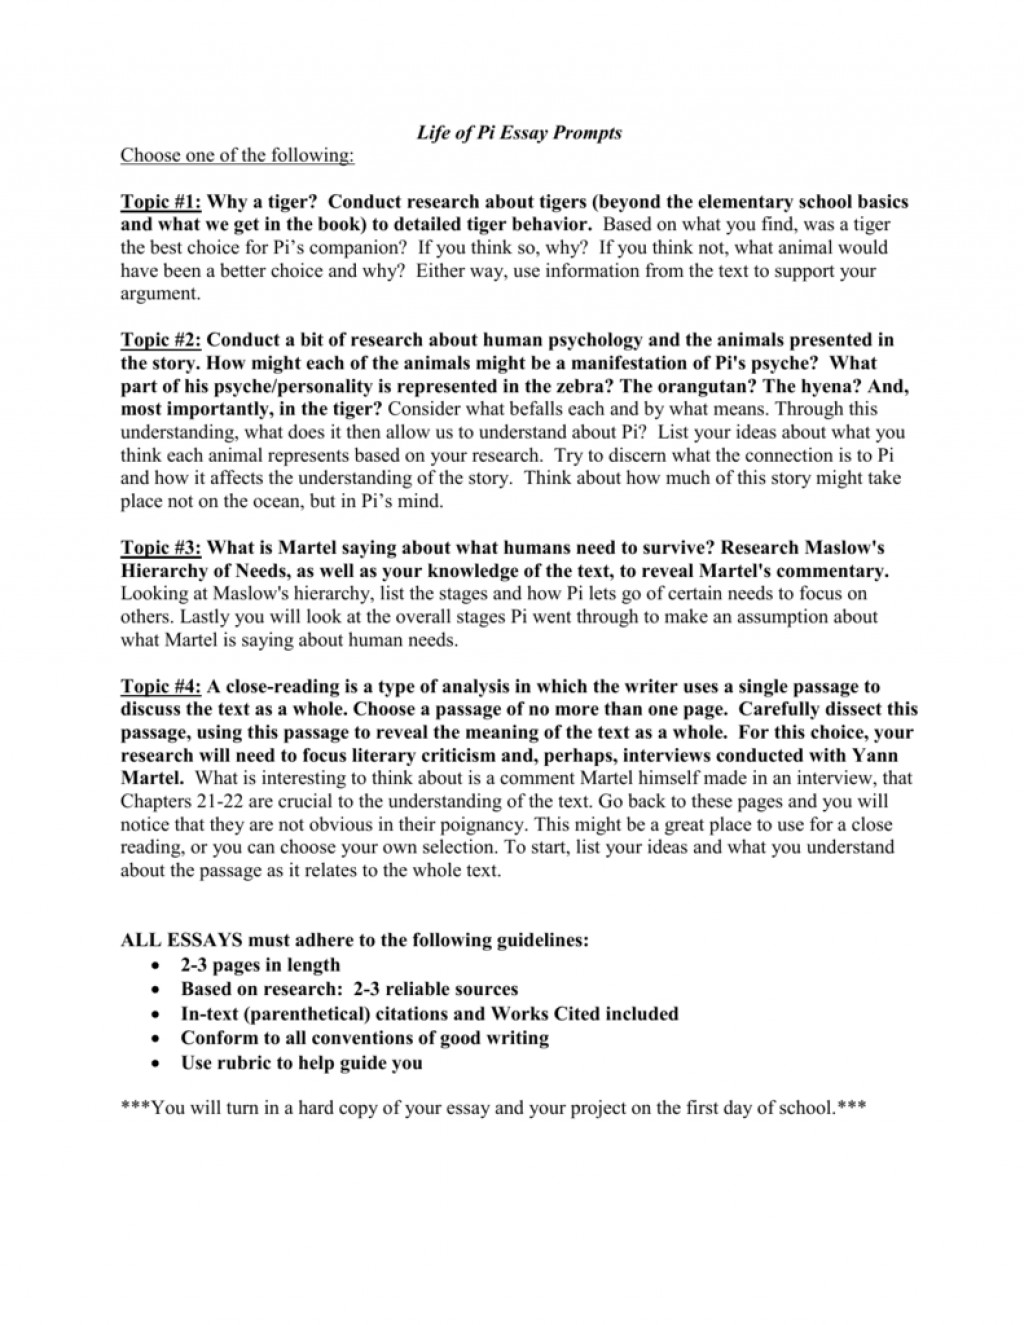 002 Essay Topics For Life Of Pi 008658963 1 Incredible Research Paper Prompts Writing Large